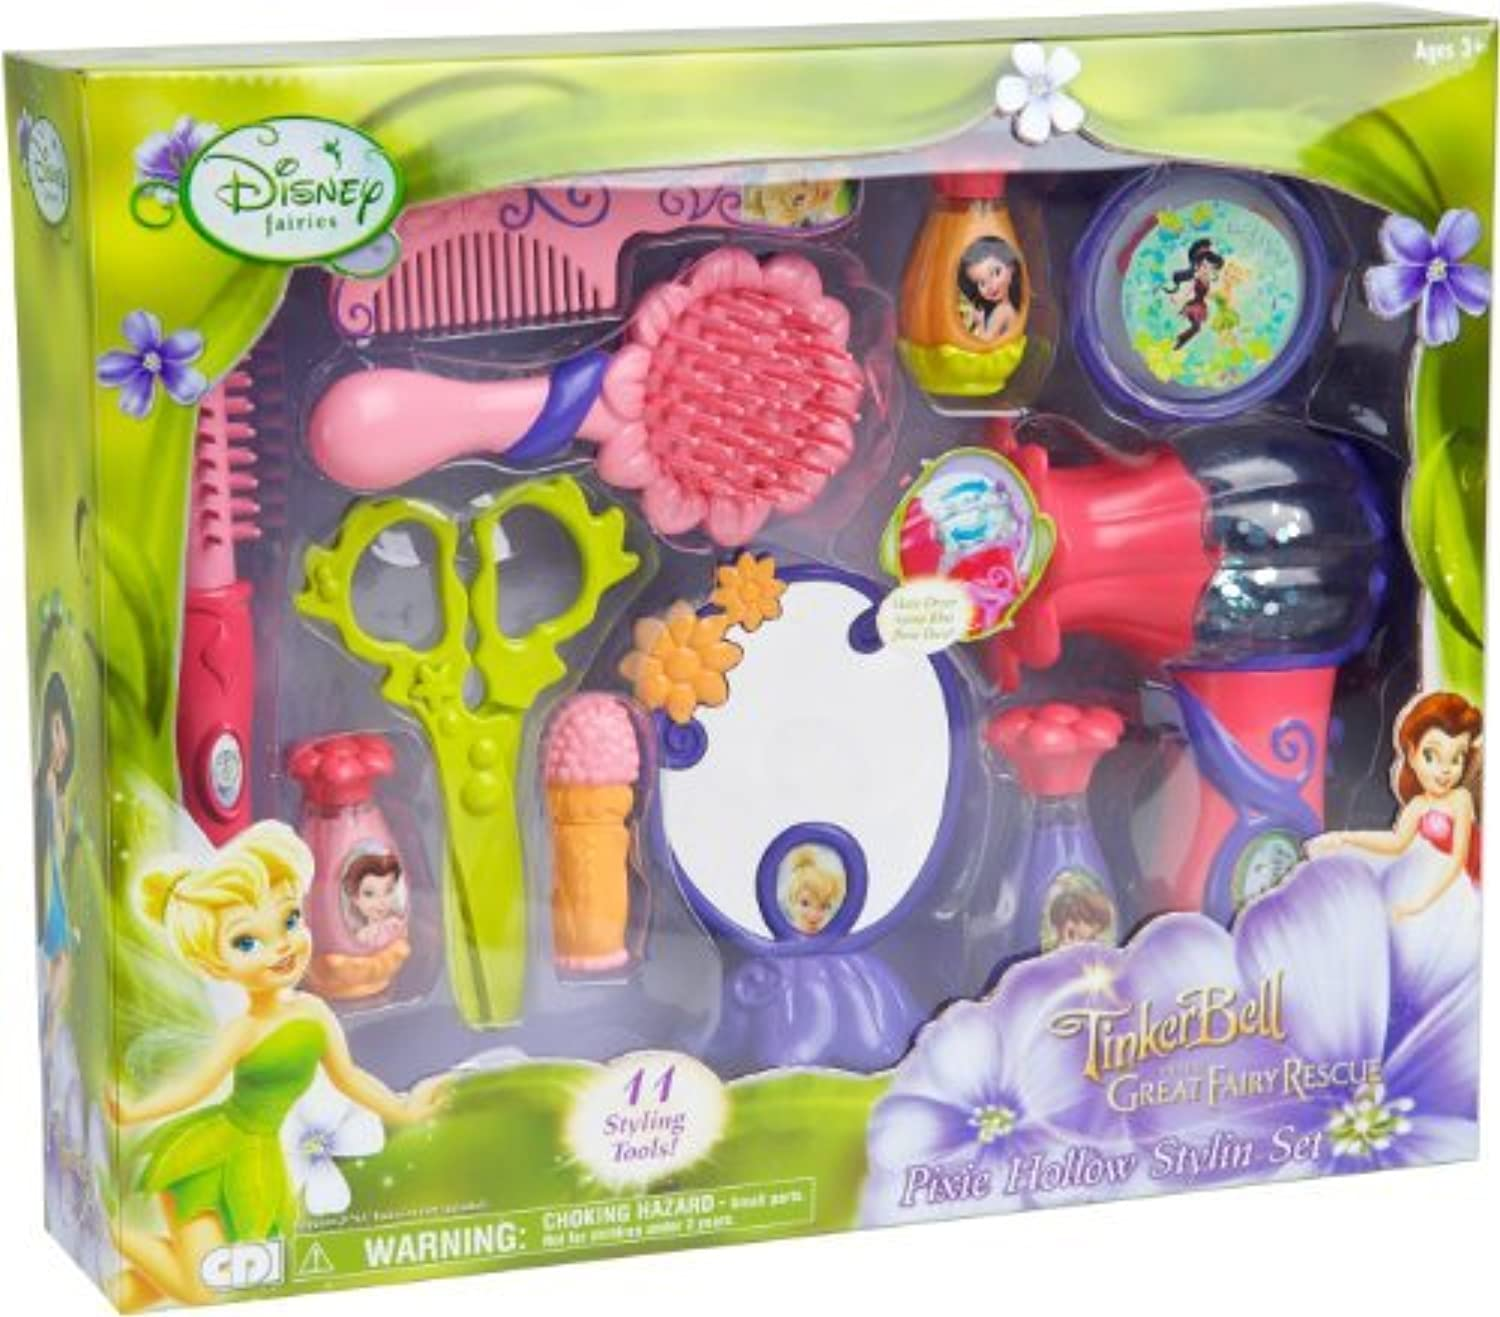 Disney Fairies Stylin' Set (Window Box) by Disney